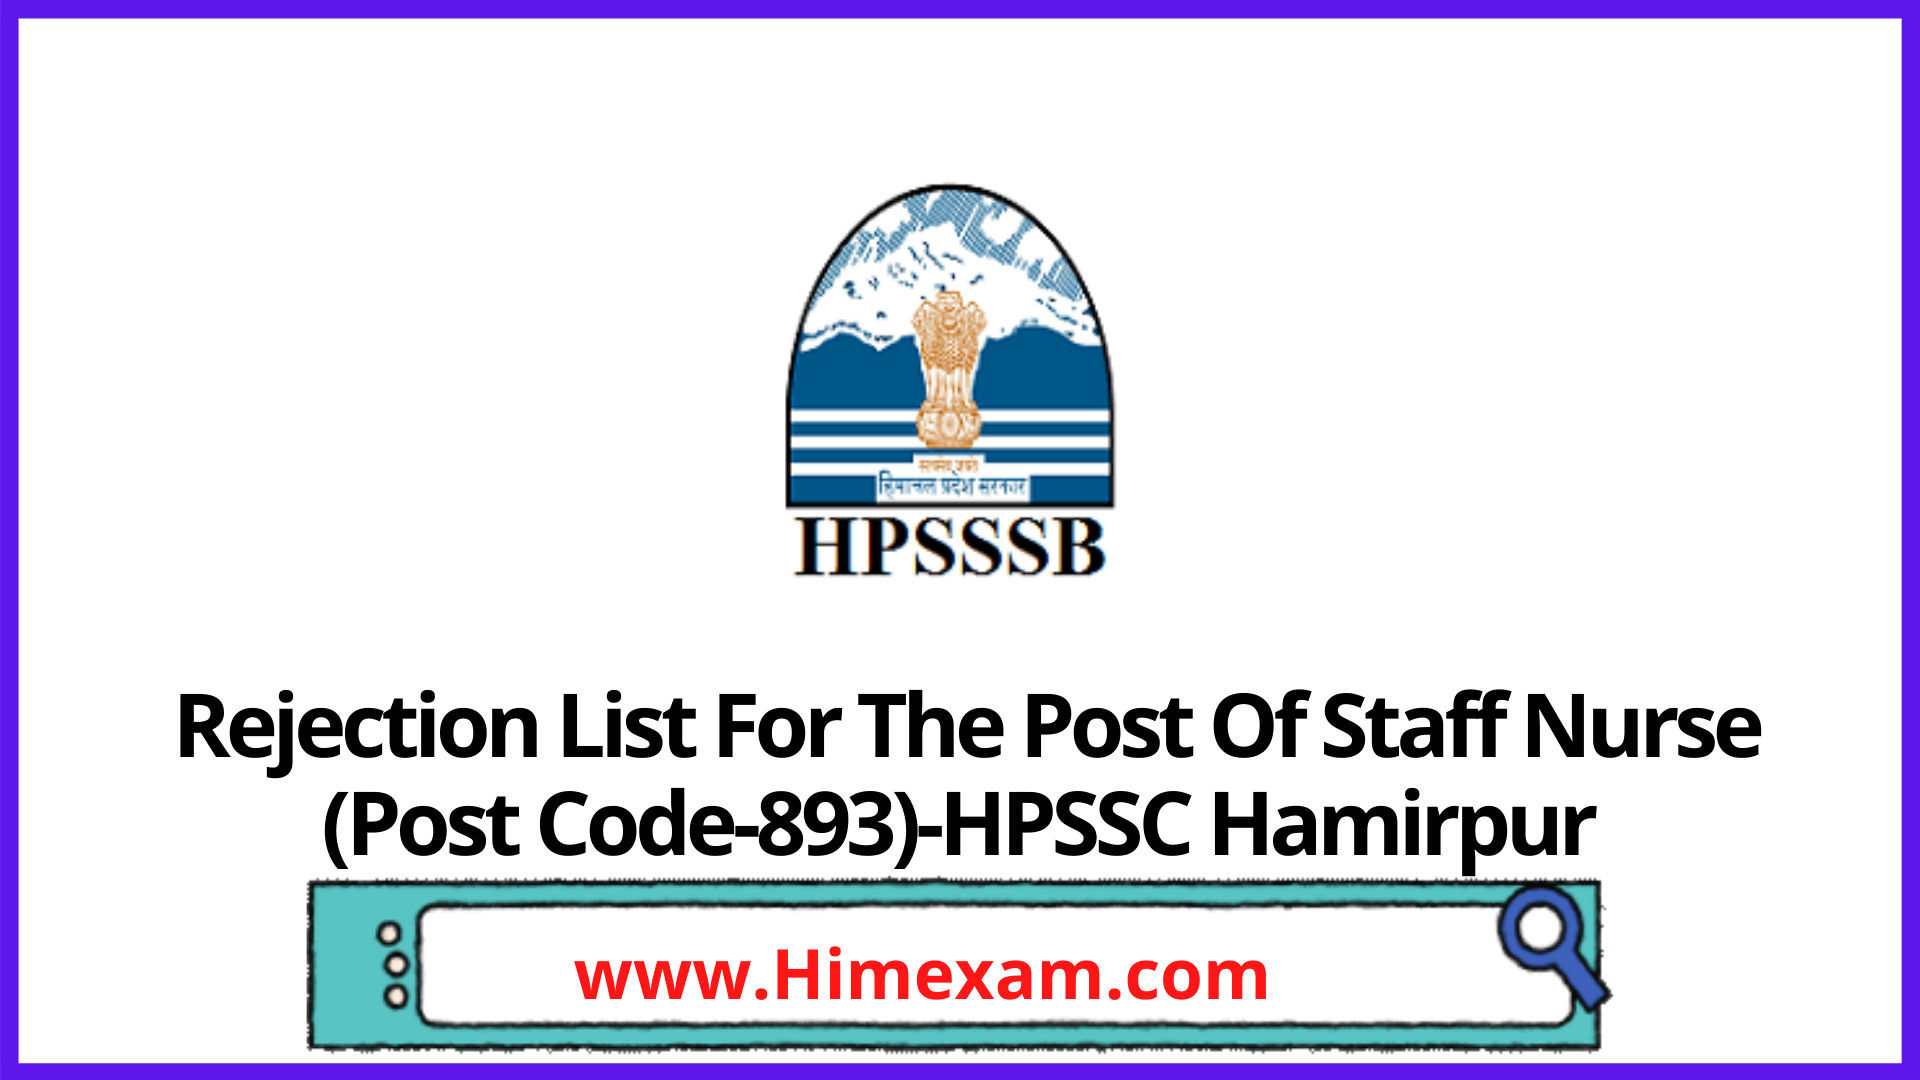 Rejection List For The Post Of Staff Nurse (Post Code-893)-HPSSC Hamirpur